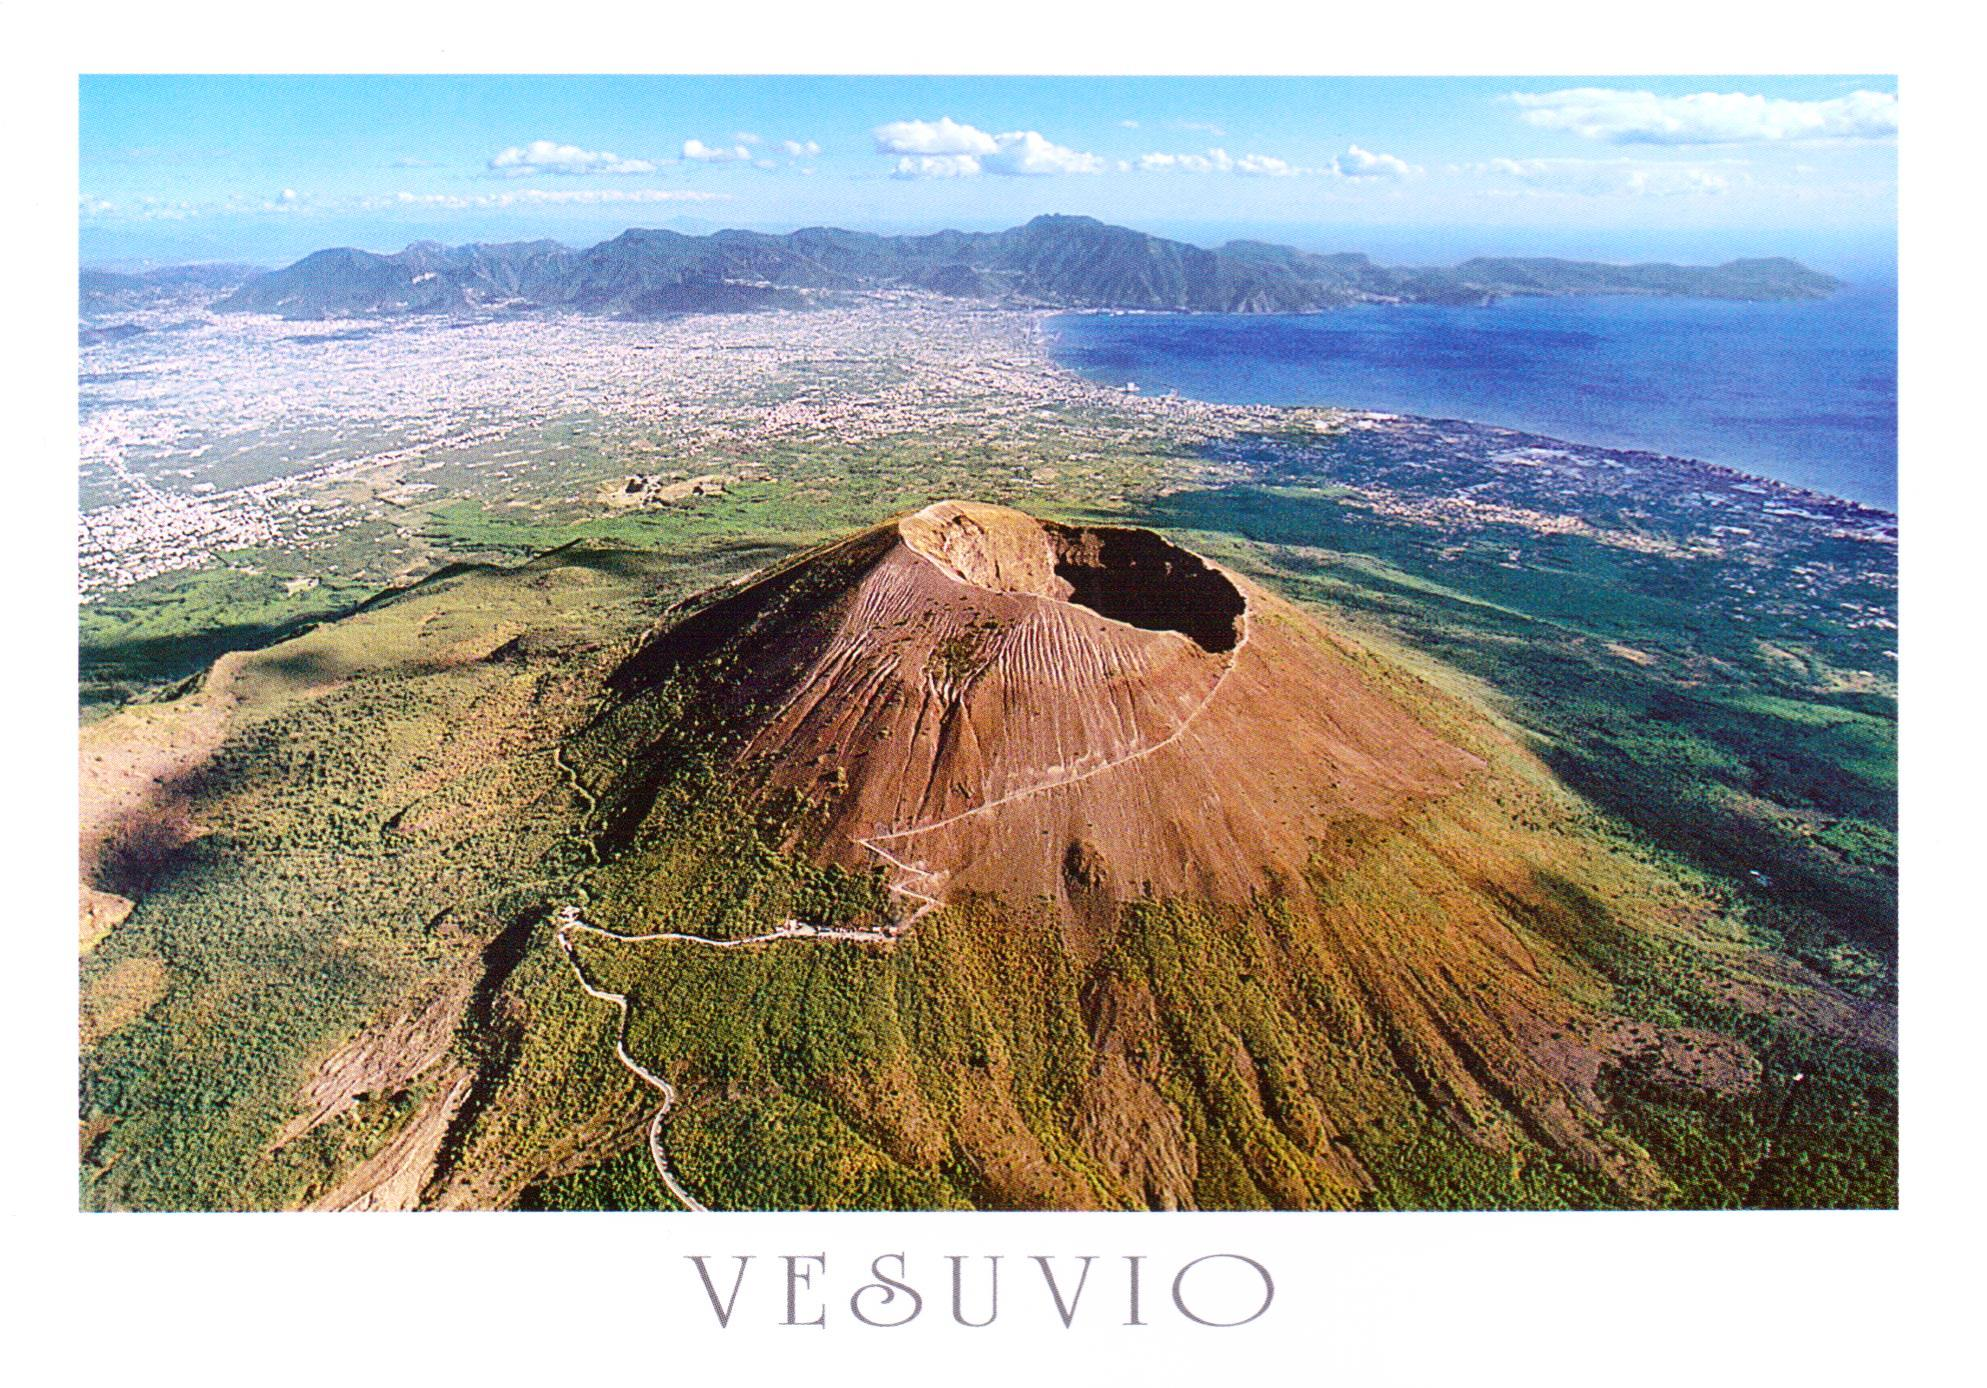 the mount vesuvius volcano 2011-9-8  mount vesuvius today two million  the volcano continued to erupt every 100 years  vesuvius stands in the middle of a.